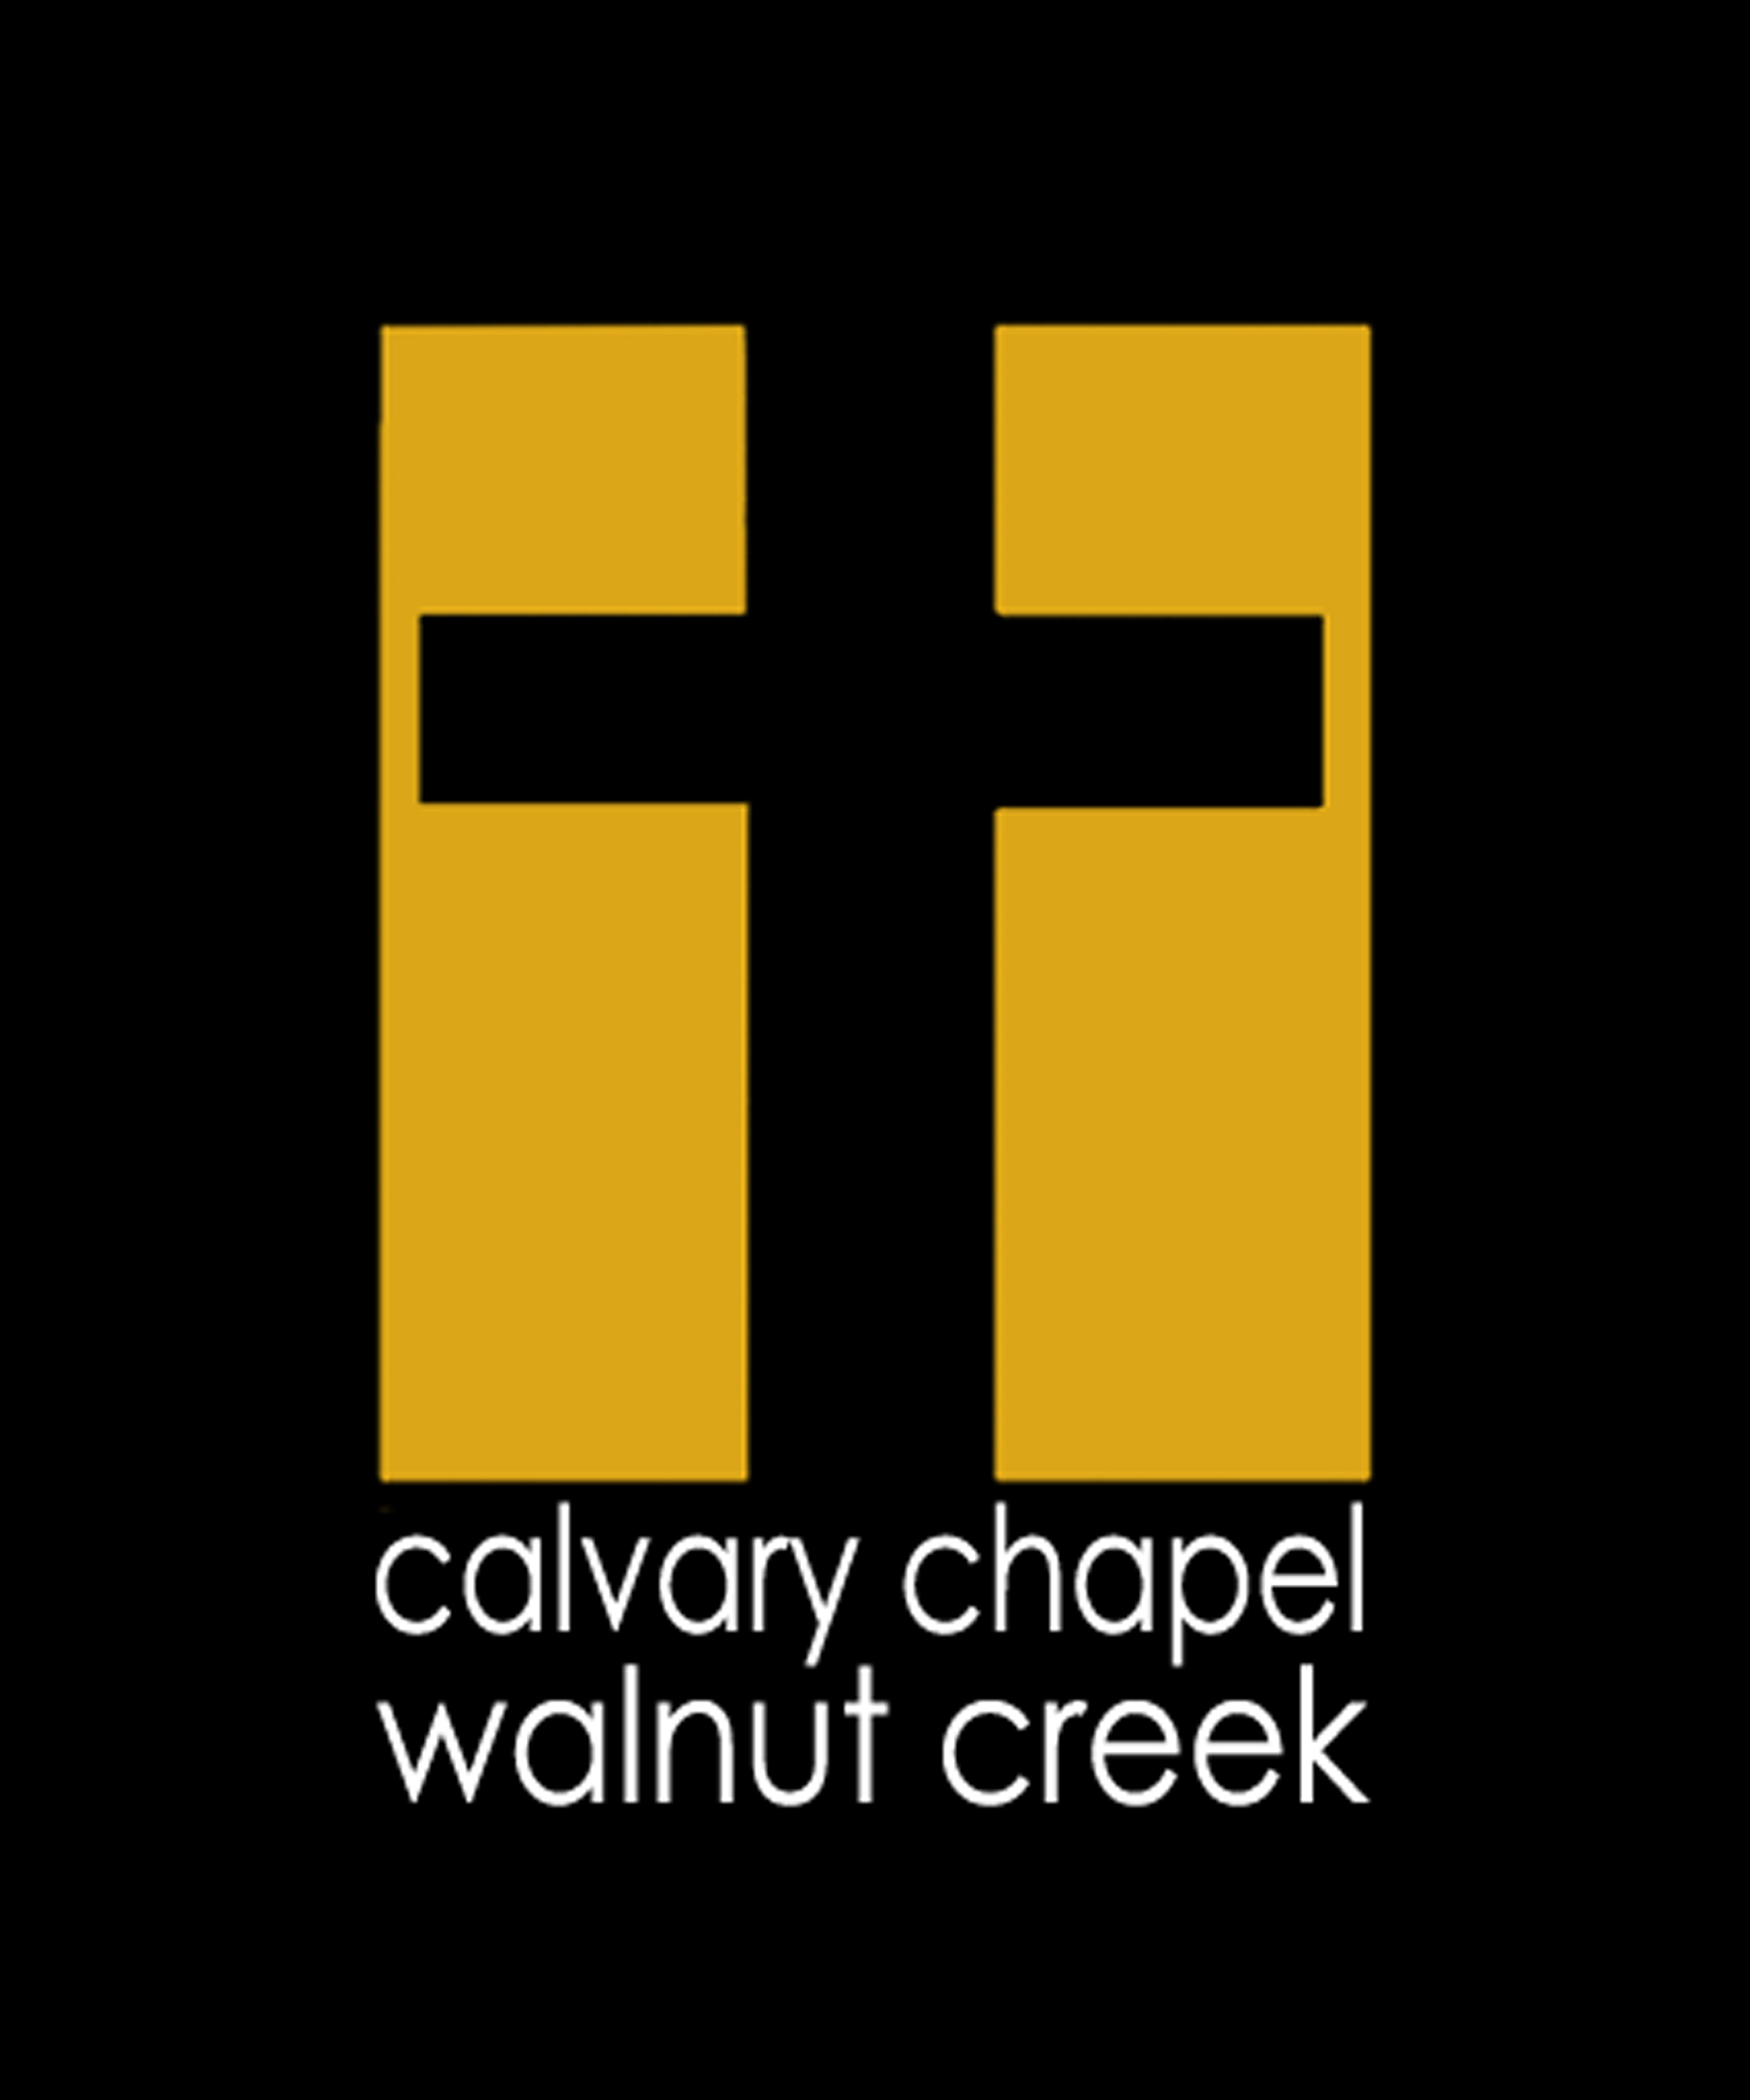 Calvary Chapel Walnut Creek